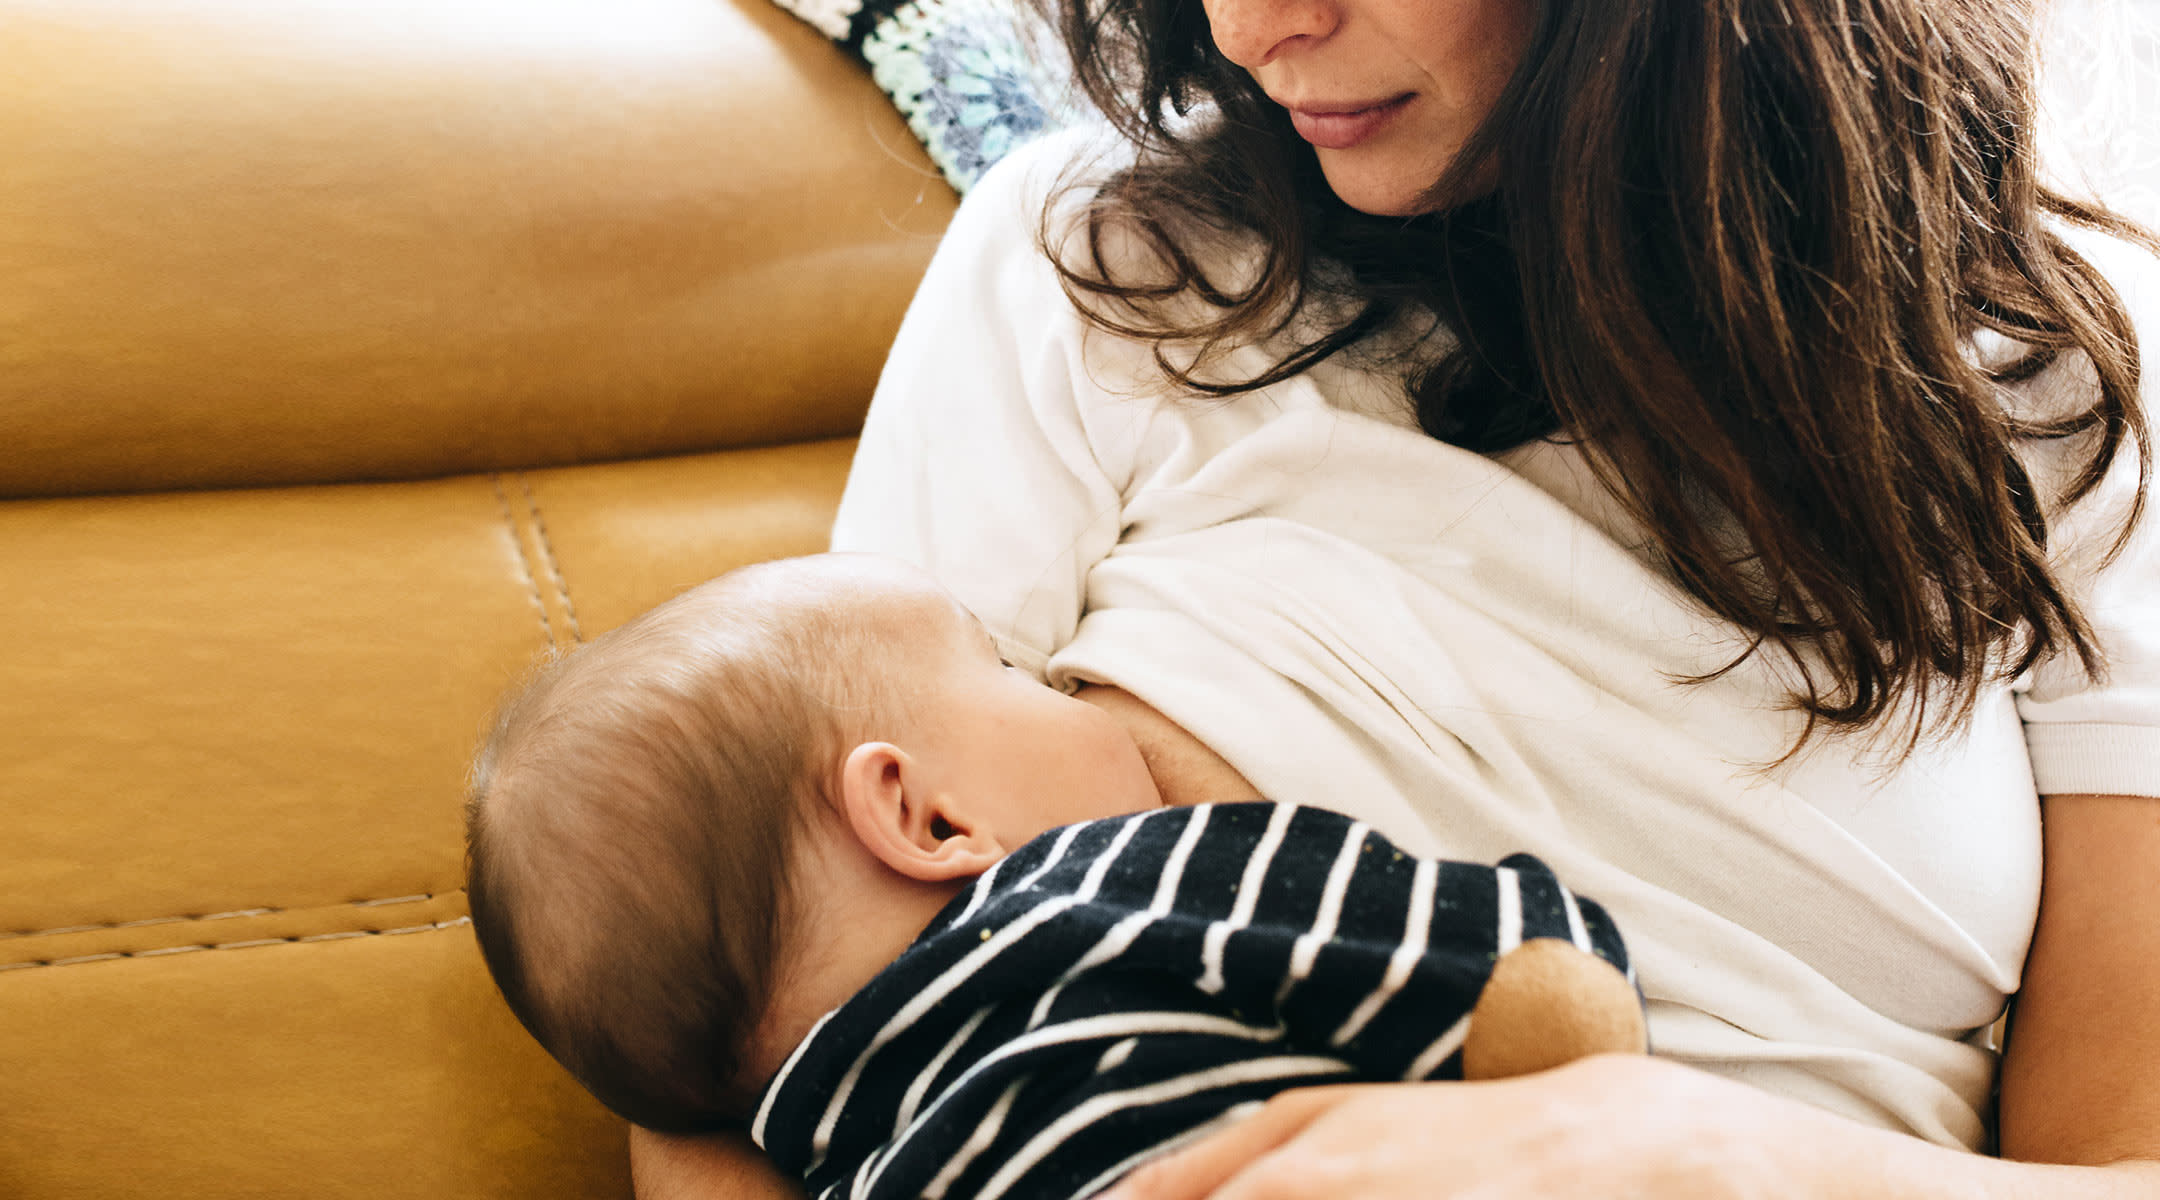 new mom breastfeeding new baby at home